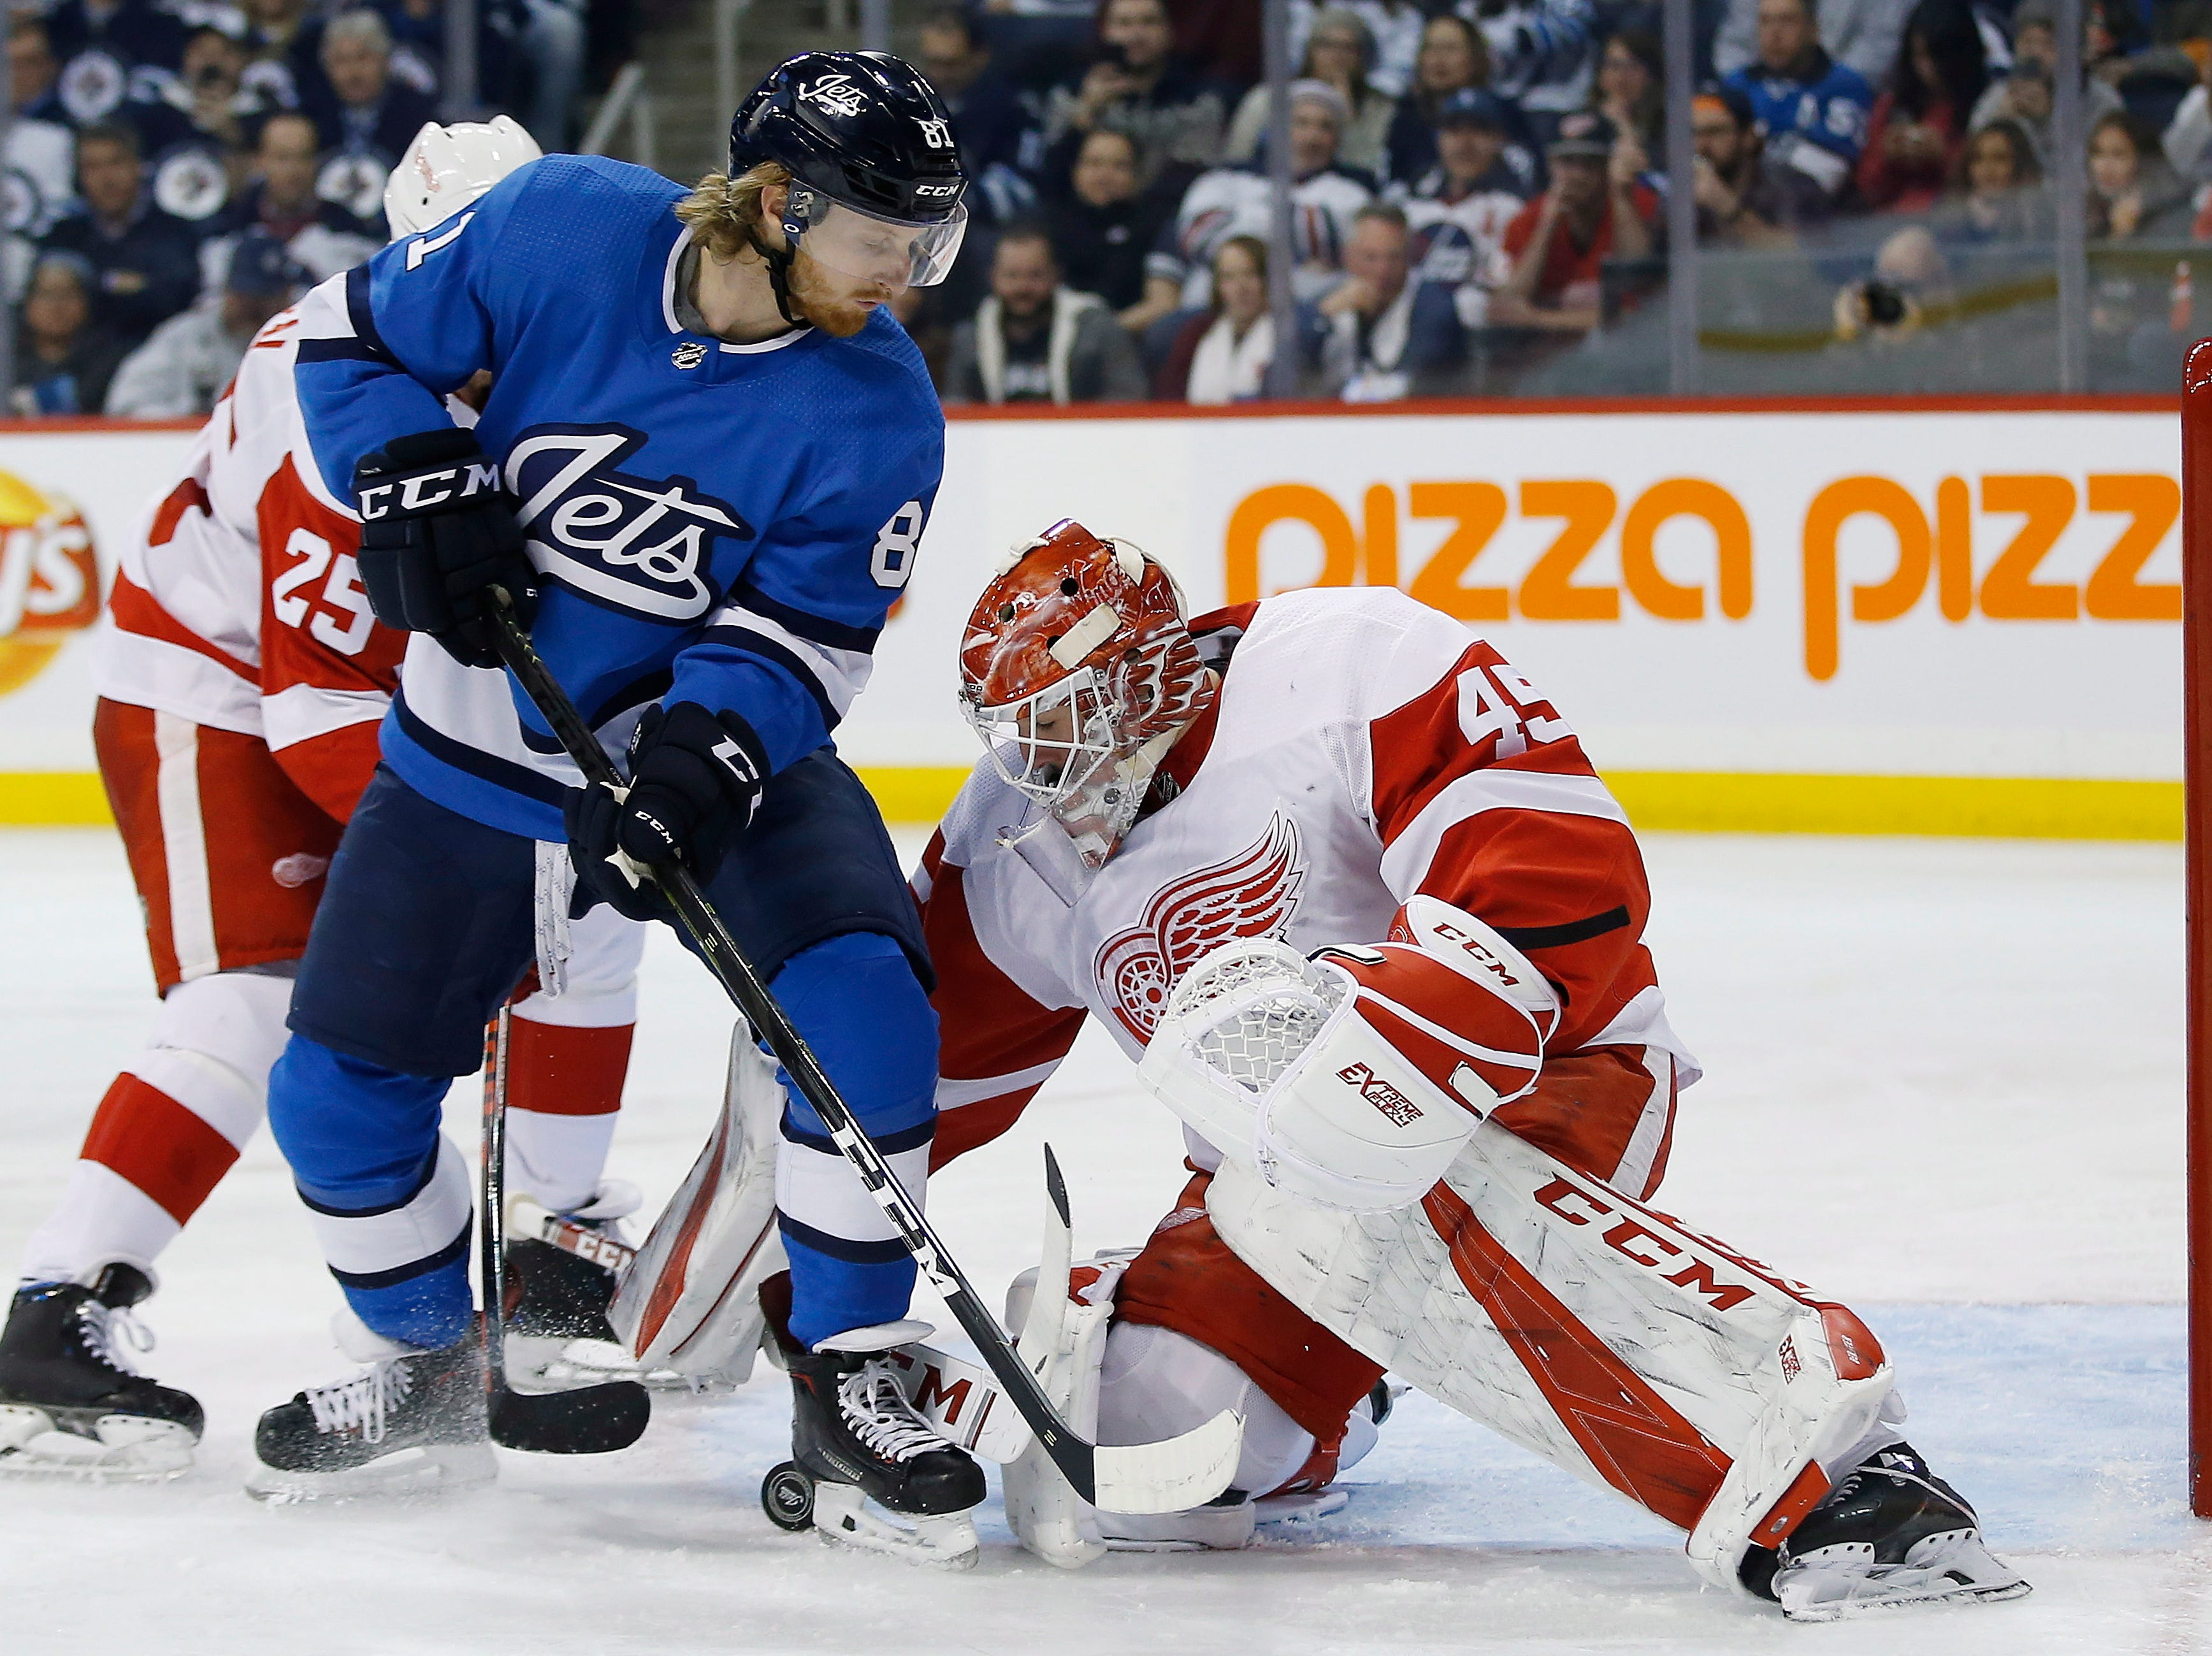 Detroit Red Wings goaltender Jonathan Bernier (45) jumps on a loose puck as Winnipeg Jets' Kyle Connor (81) applies pressure and Wings' Mike Green (25) defends during the second period.